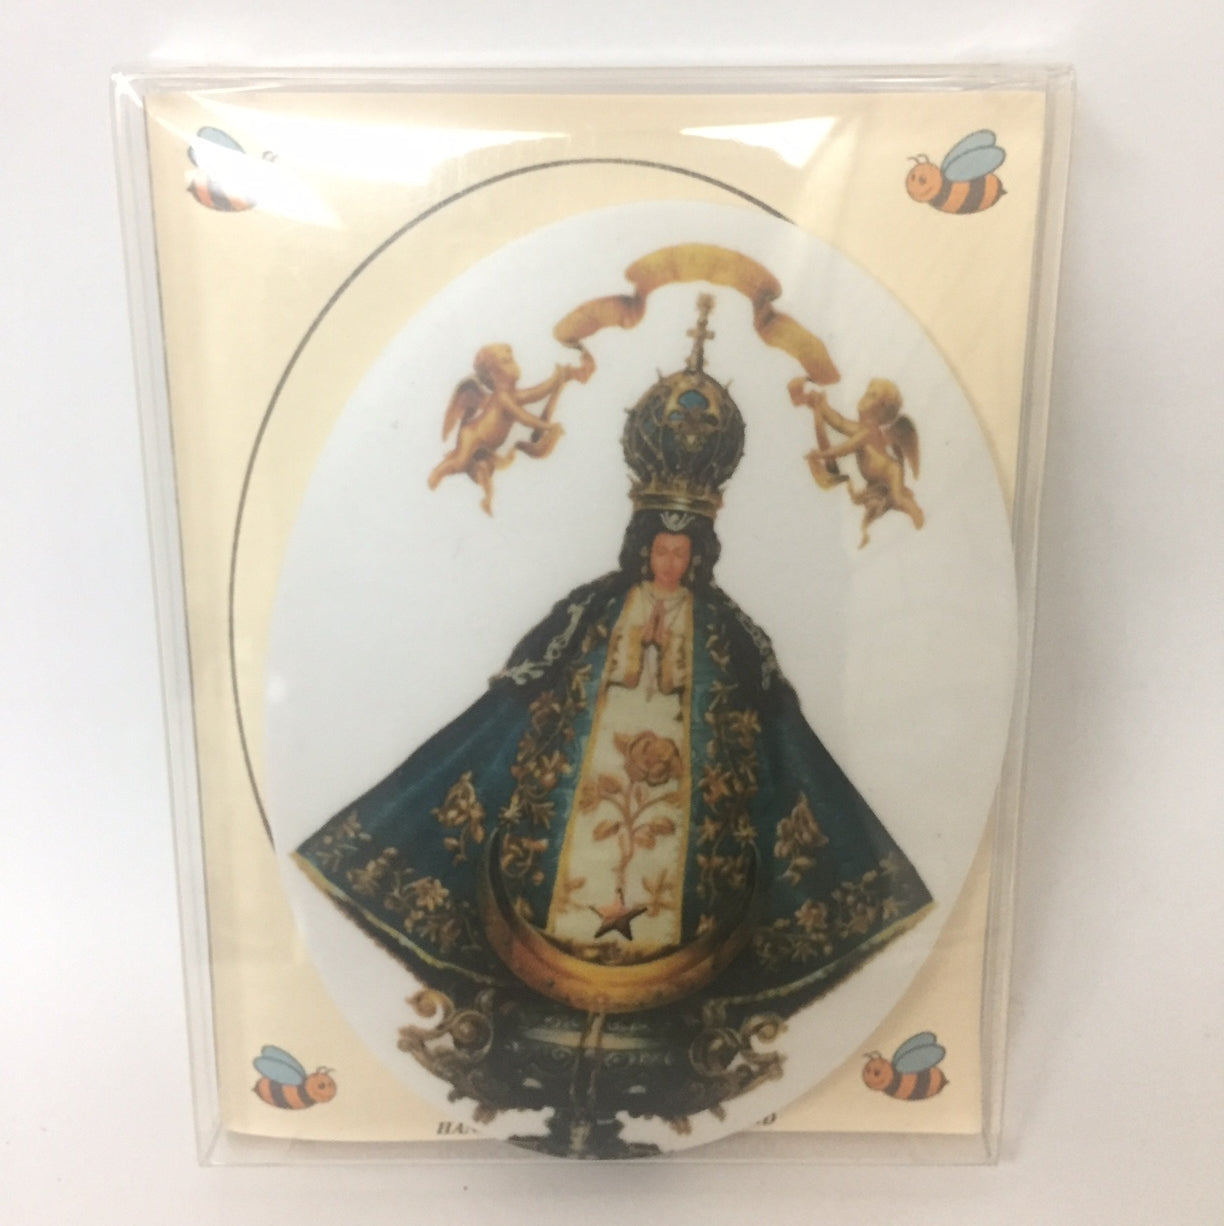 Our Lady of San Juan Oval Tile